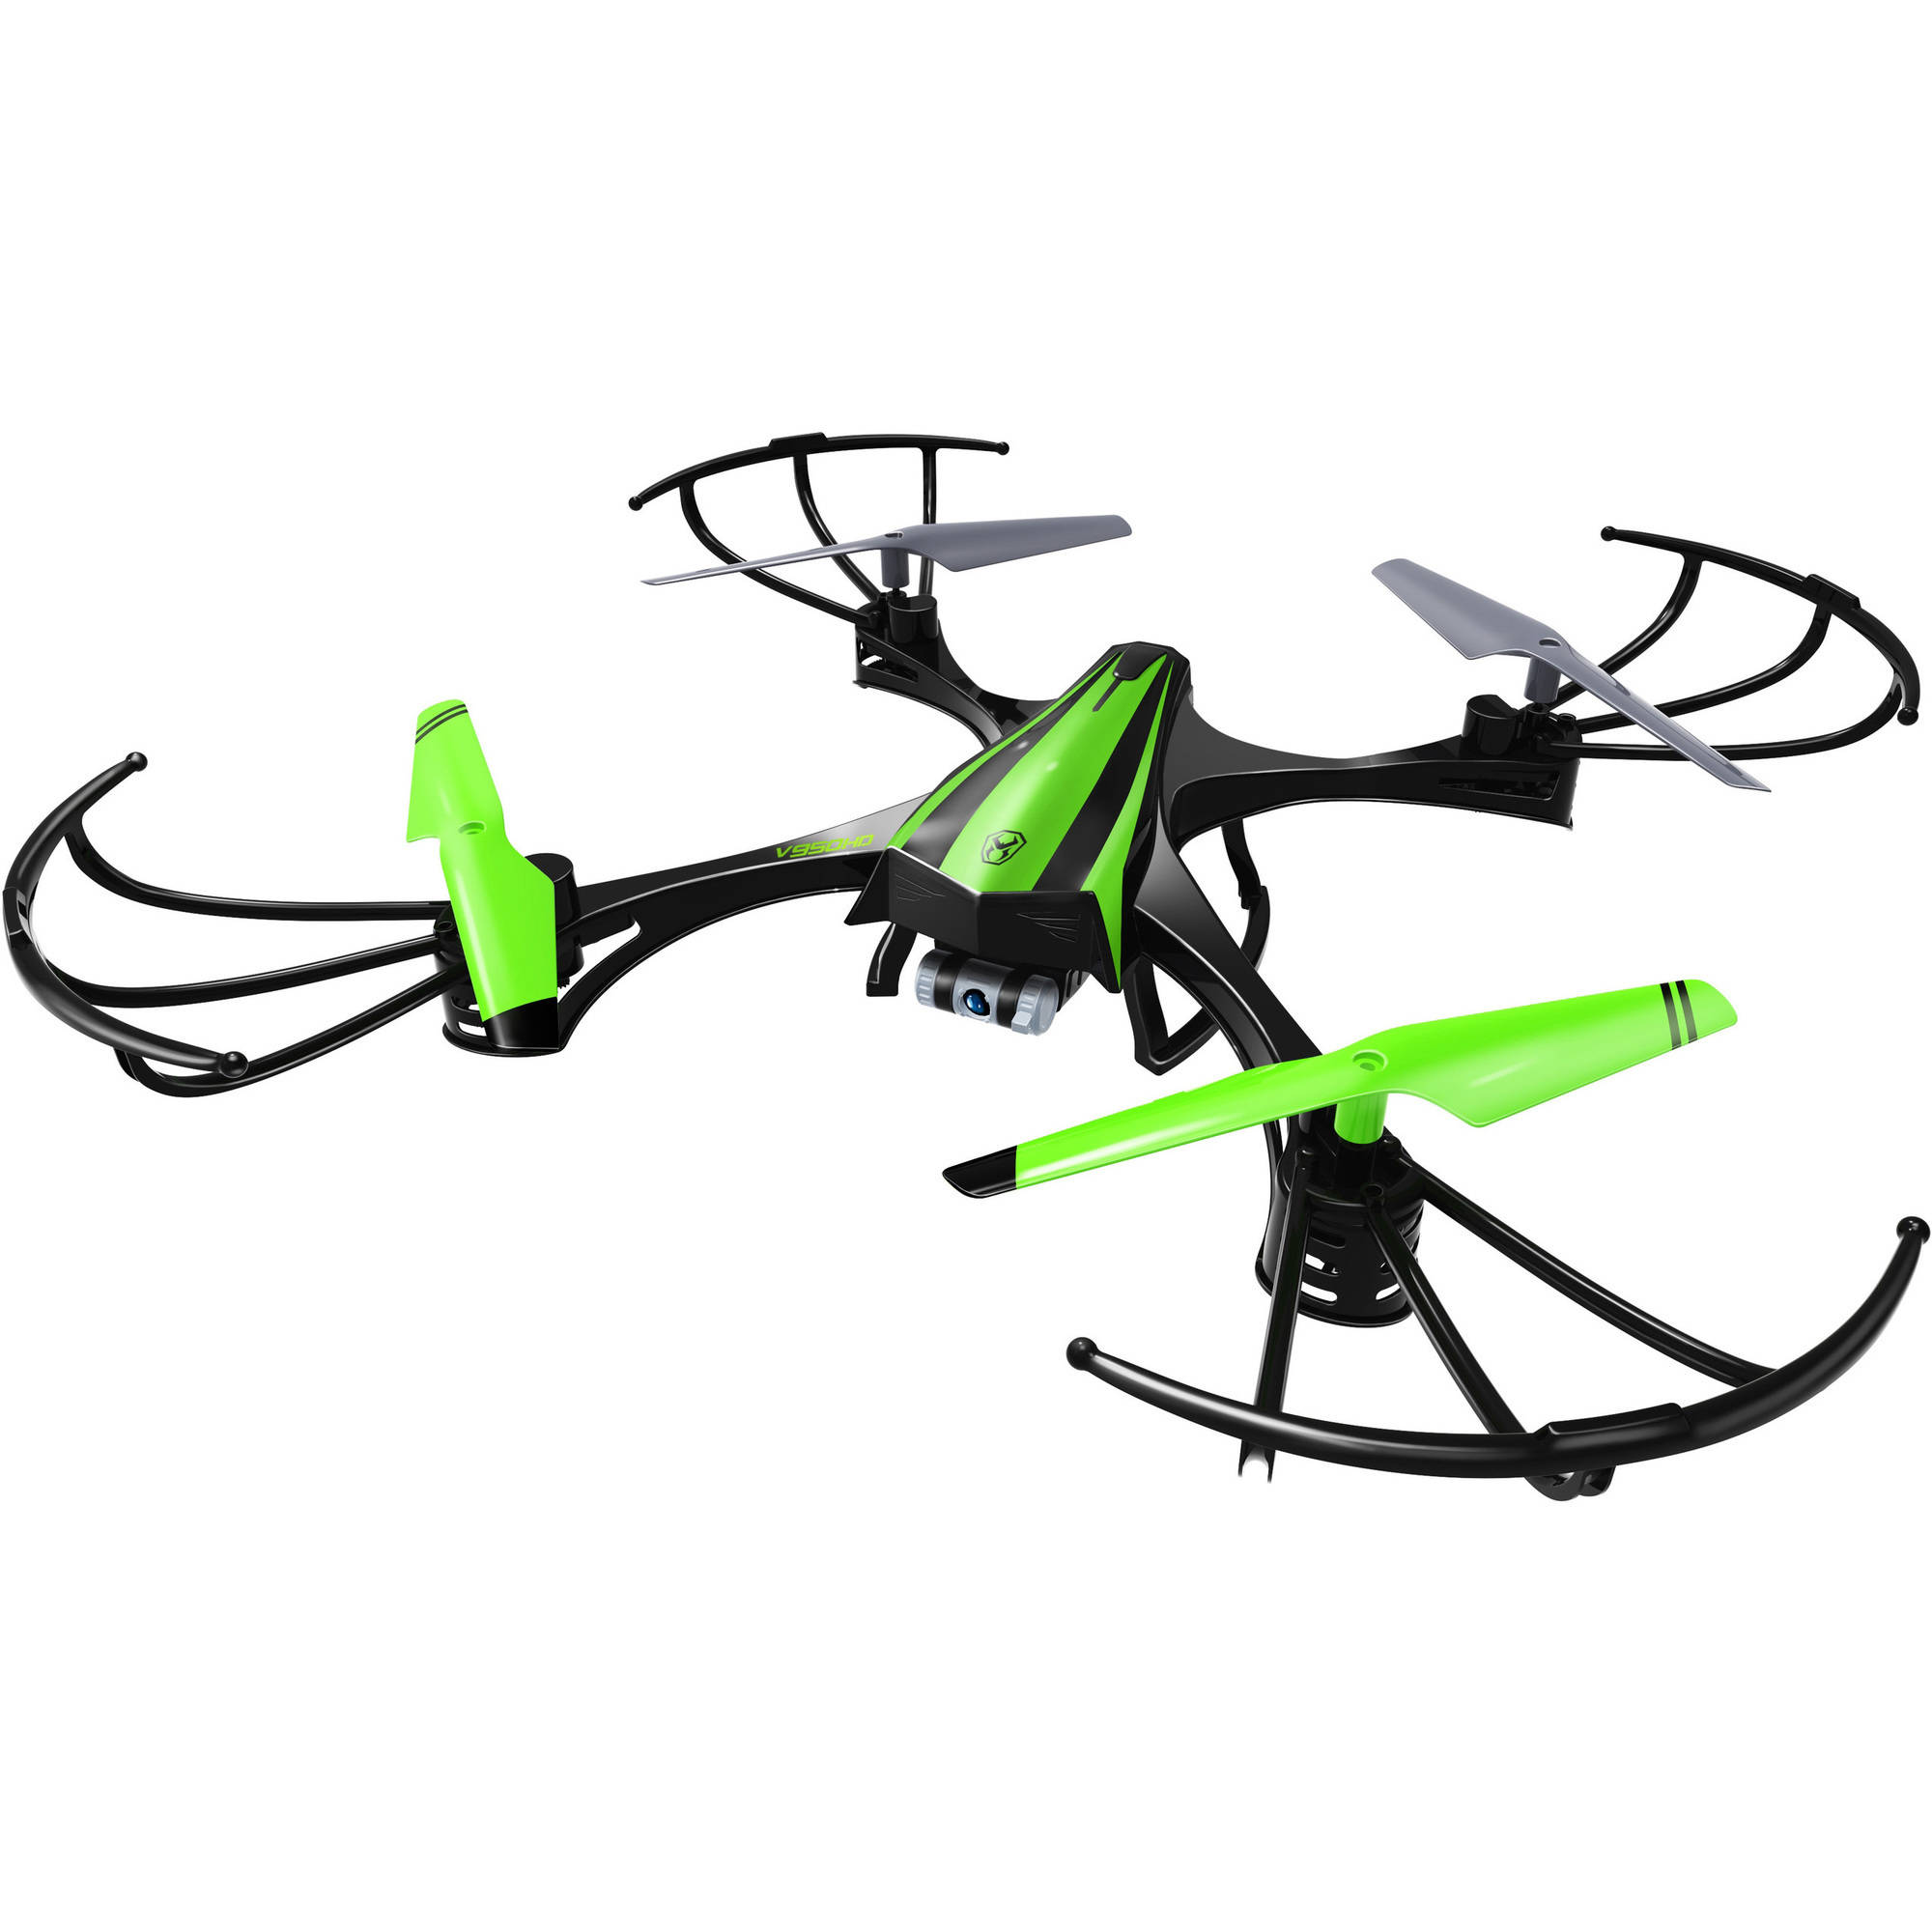 95554c50 9211 4355 af91 a147ddd7e97d_1.537494479a3013efde68889dcd2ac41a sky viper v950hd video drone walmart com Drone with Camera at soozxer.org